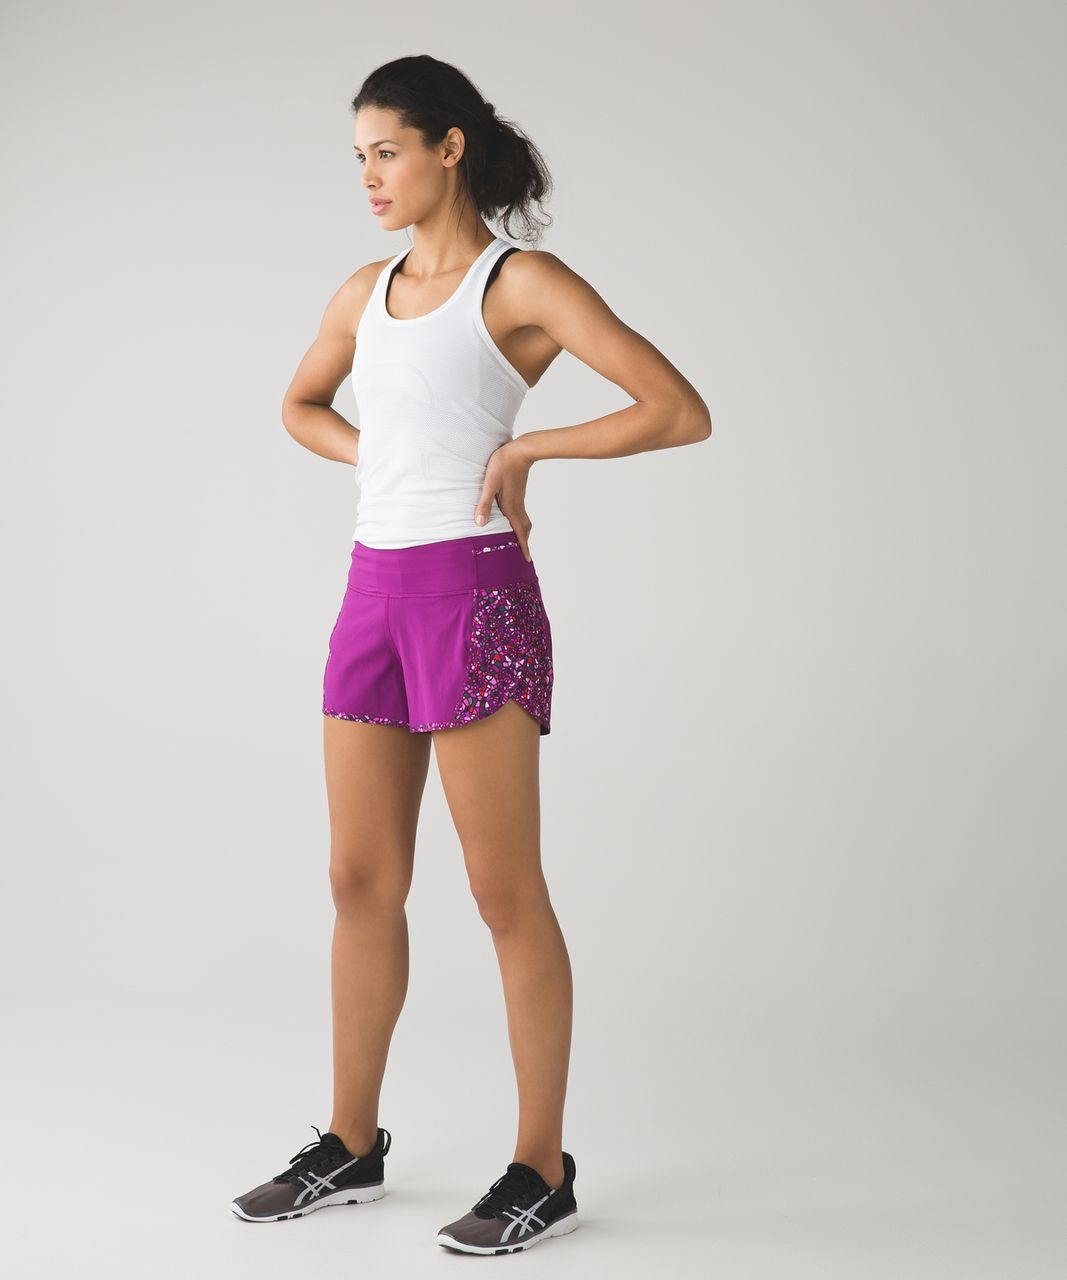 Lululemon Real Quick Short - Regal Plum / Paradise Camo Multi